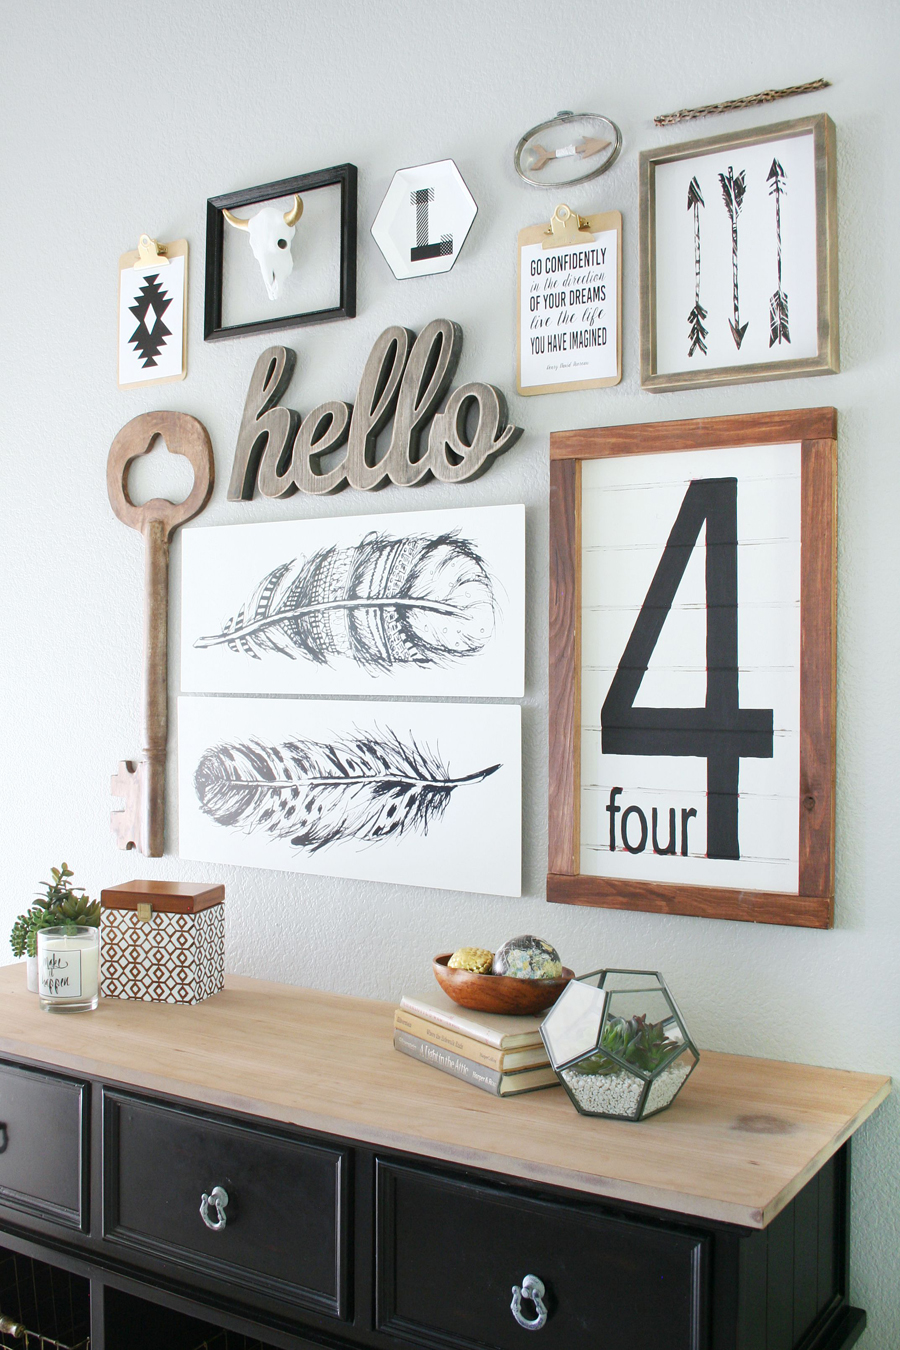 Create Meaningful Decor with Shutterfly